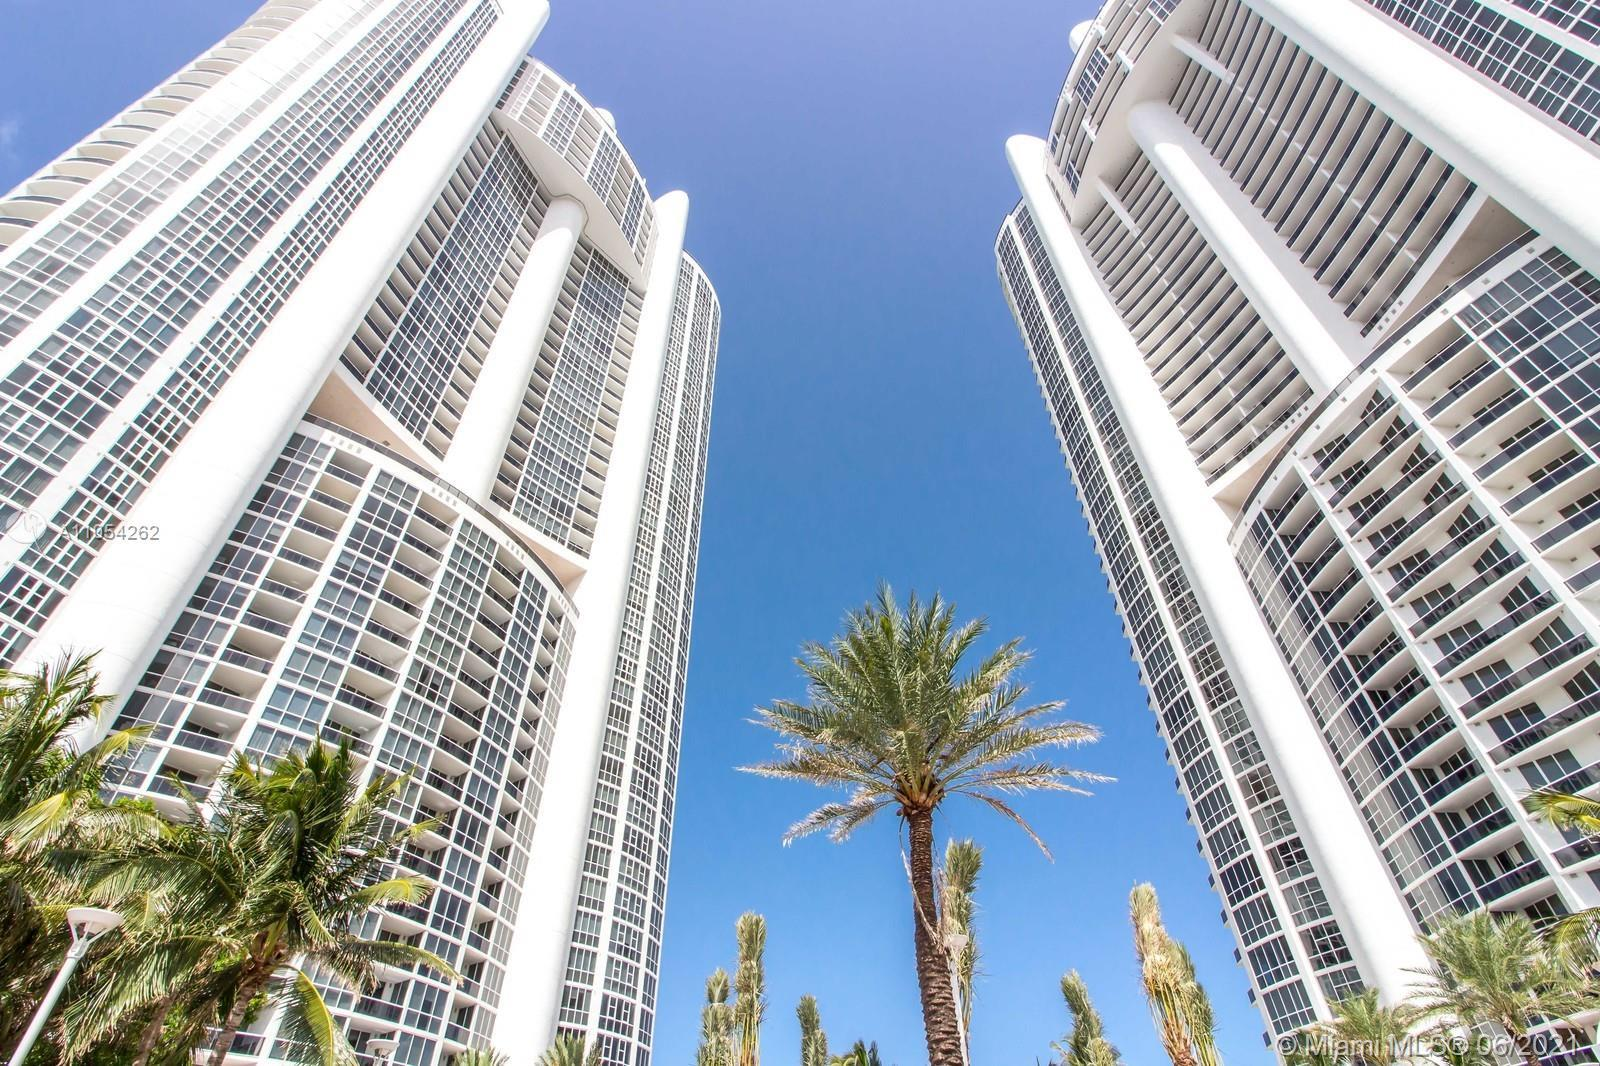 39th floor views of intracoastal (sunset) and ocean (sunrise) and all the great amenities including